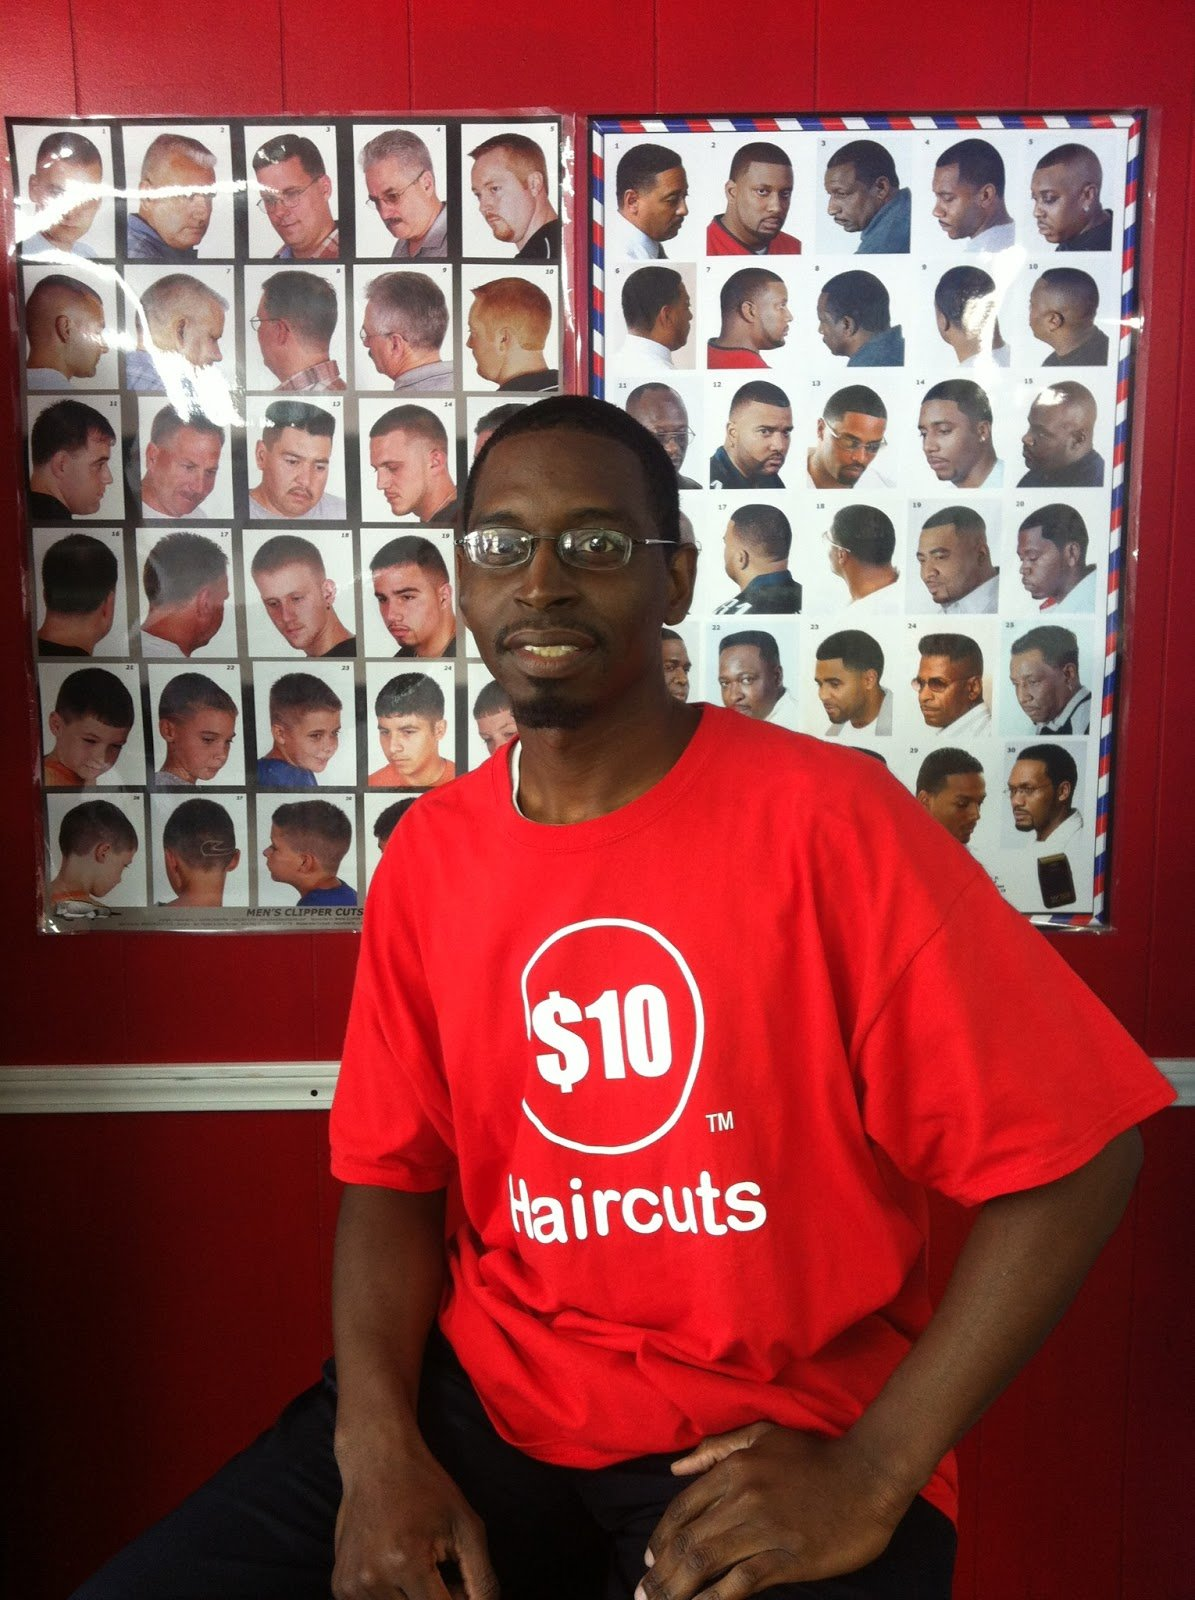 The Best 10 Dollar Haircuts 76011 June 2013 Pictures Original 1024 x 768